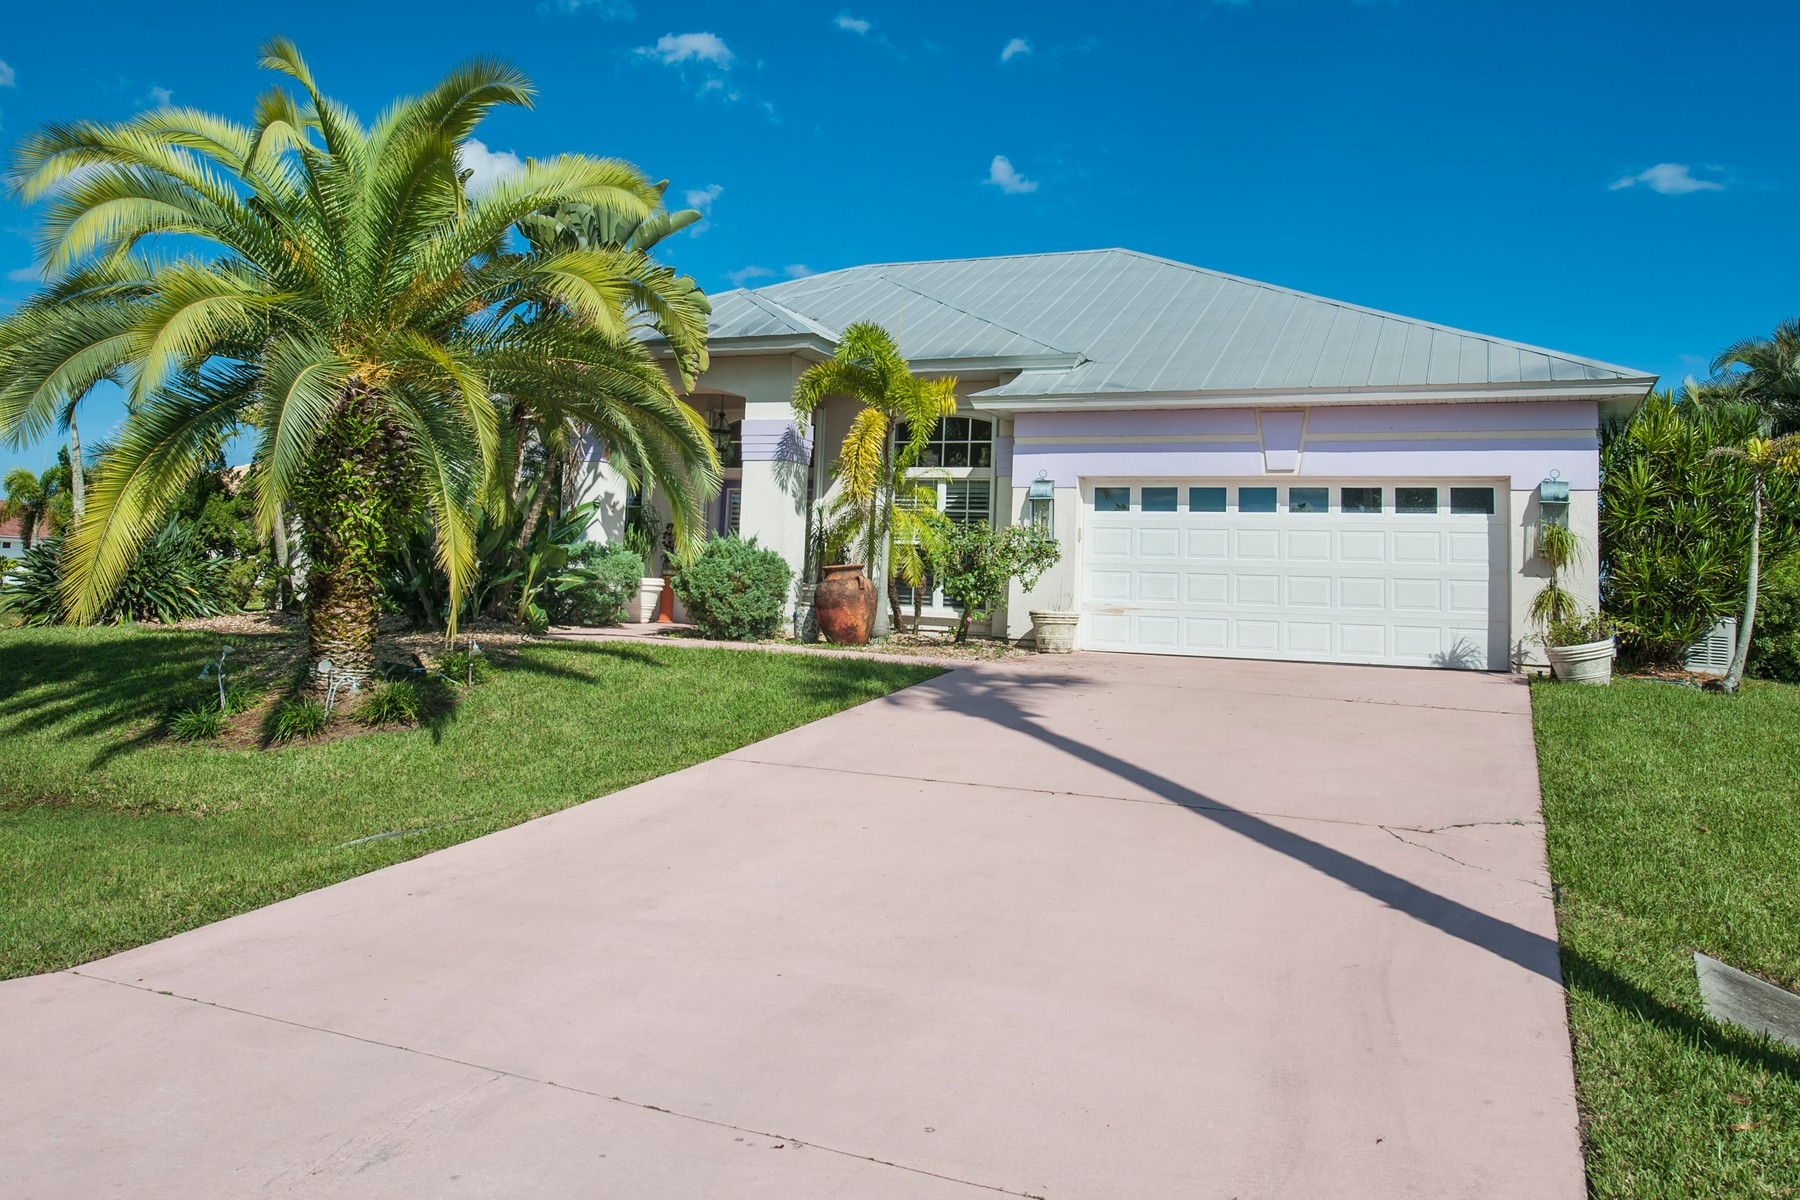 Single Family Home for Sale at Delightful Lakefront Home in Copeland's Landing 7360 33rd Avenue Vero Beach, Florida, 32967 United States